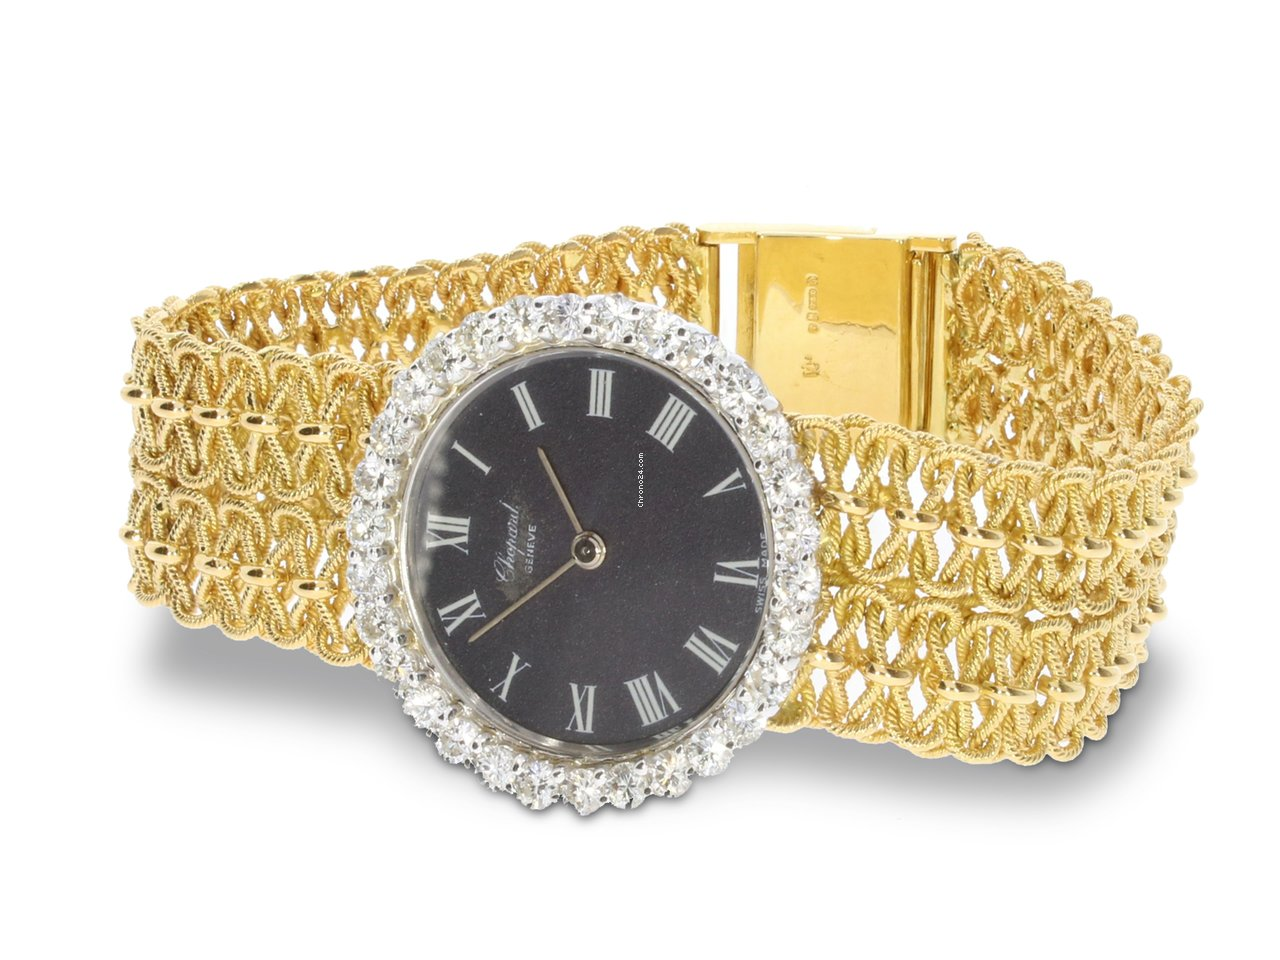 4263fbd624c38 Chopard Vintage Diamond & 18k Gold Unique Ladies Watch 1960s for $11,731  for sale from a Trusted Seller on Chrono24